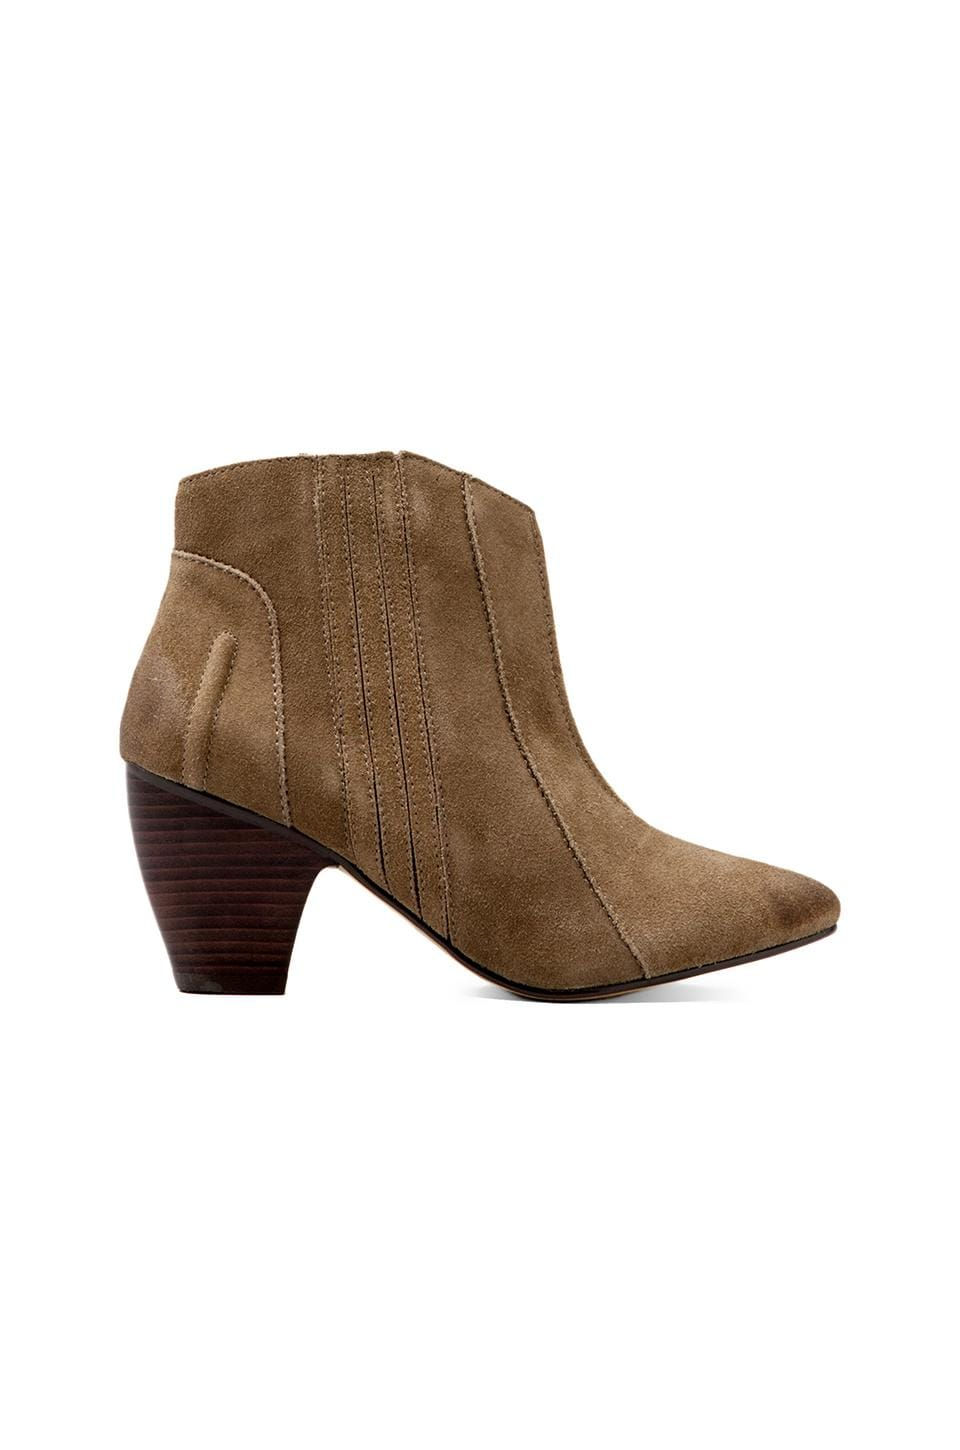 Joe's Jeans Sandy Ankle Bootie in Taupe